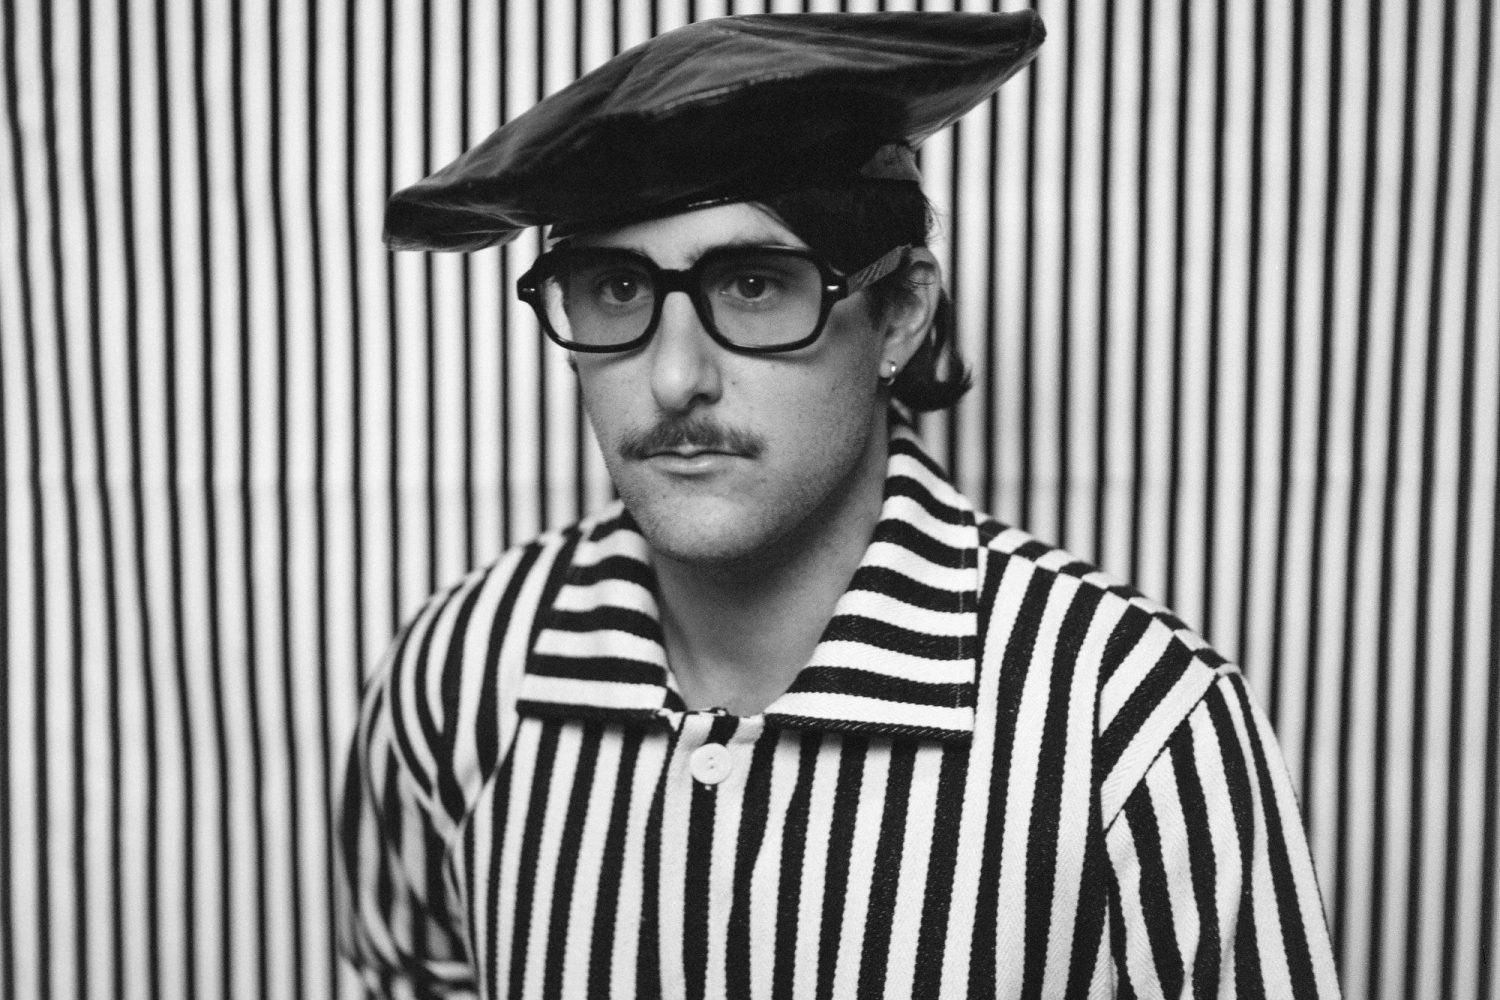 Zac Farro's is dropping a new HalfNoise album next month